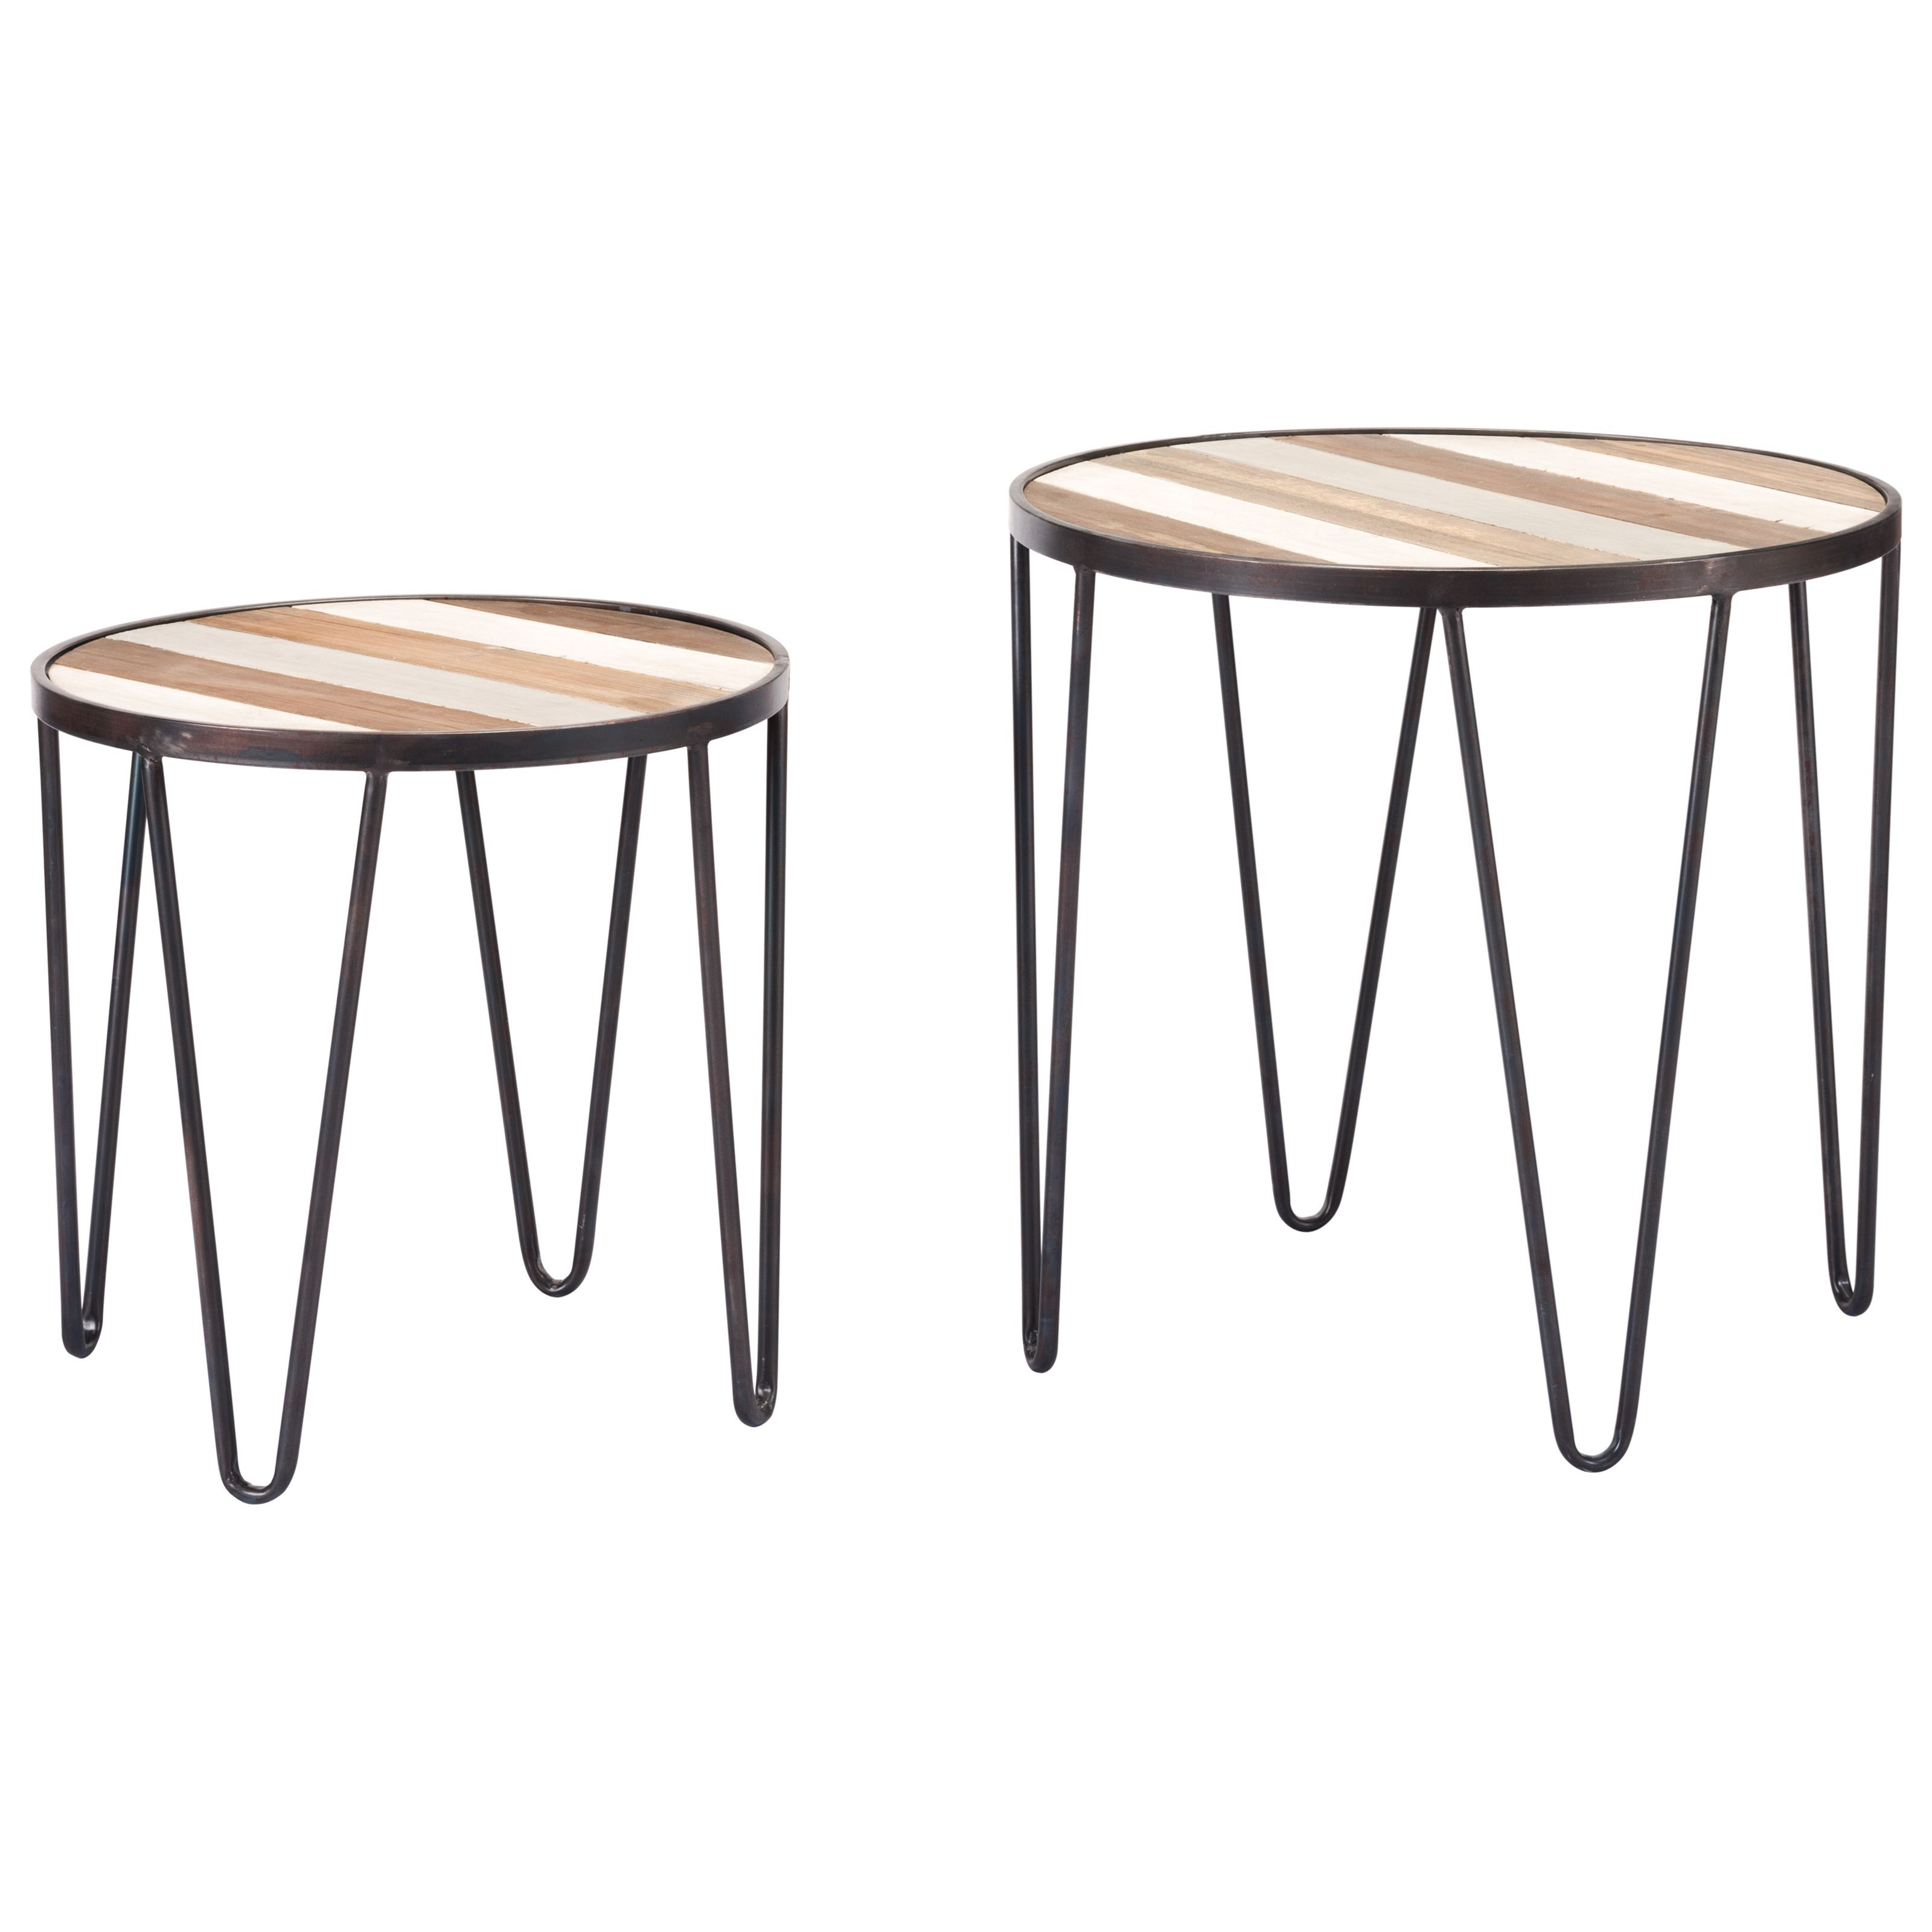 Zuo Accent Tables Set of 2 Multicolor Tray Tables - Item Number: A10661